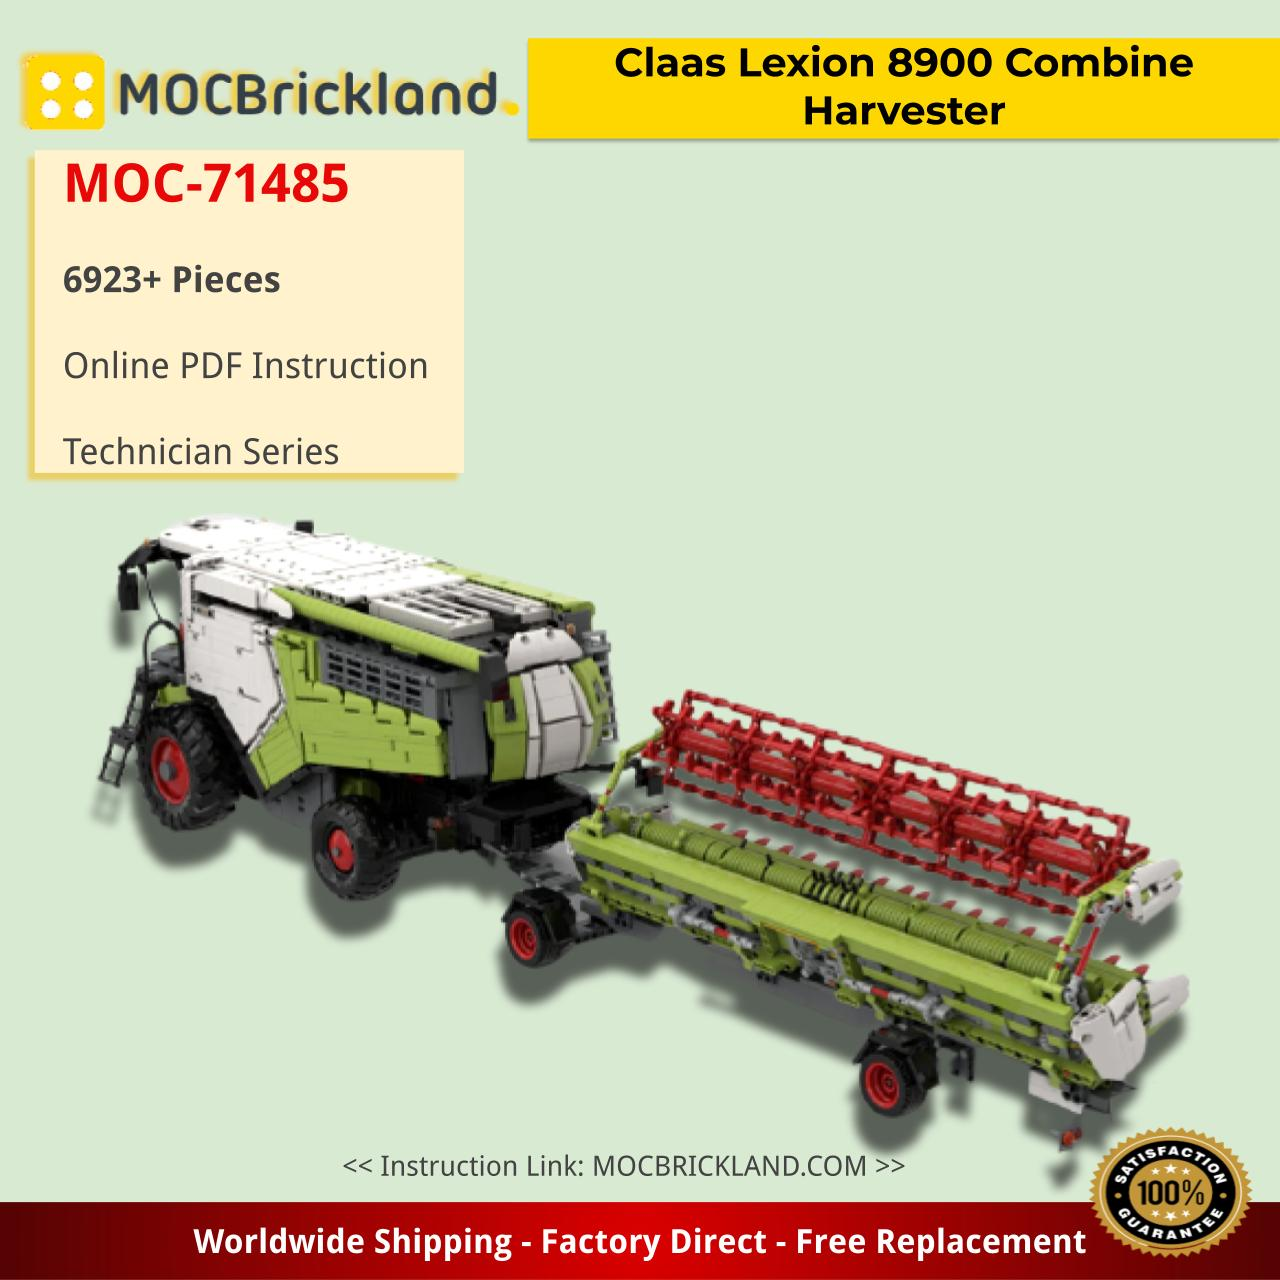 Claas Lexion 8900 Combine Harvester Technic MOC-71485 by Kneisibricks with 6923 pieces